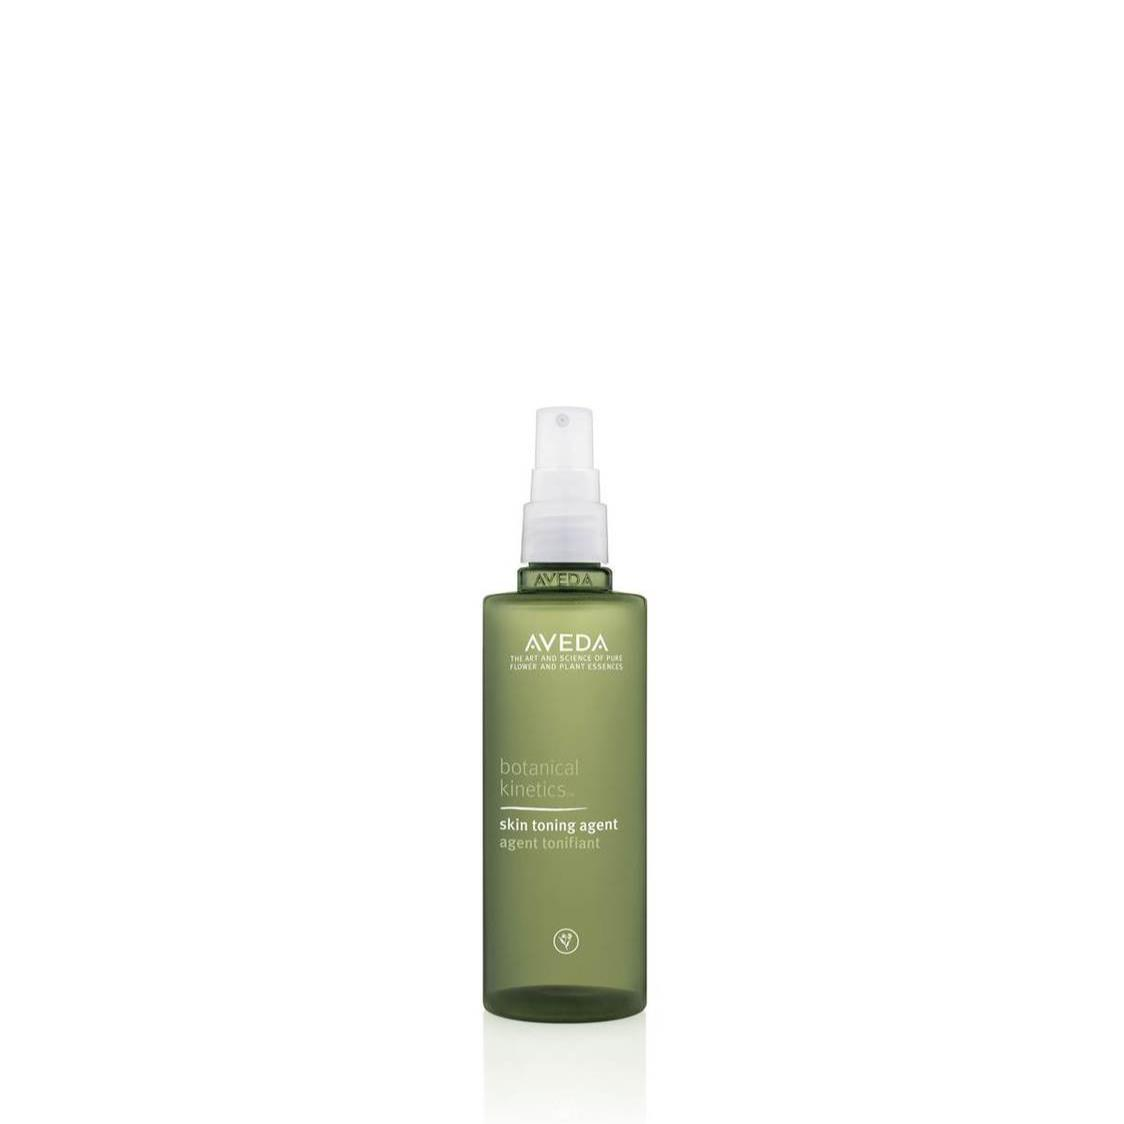 Botanical Kinetics Skin Toning Agent 150ml